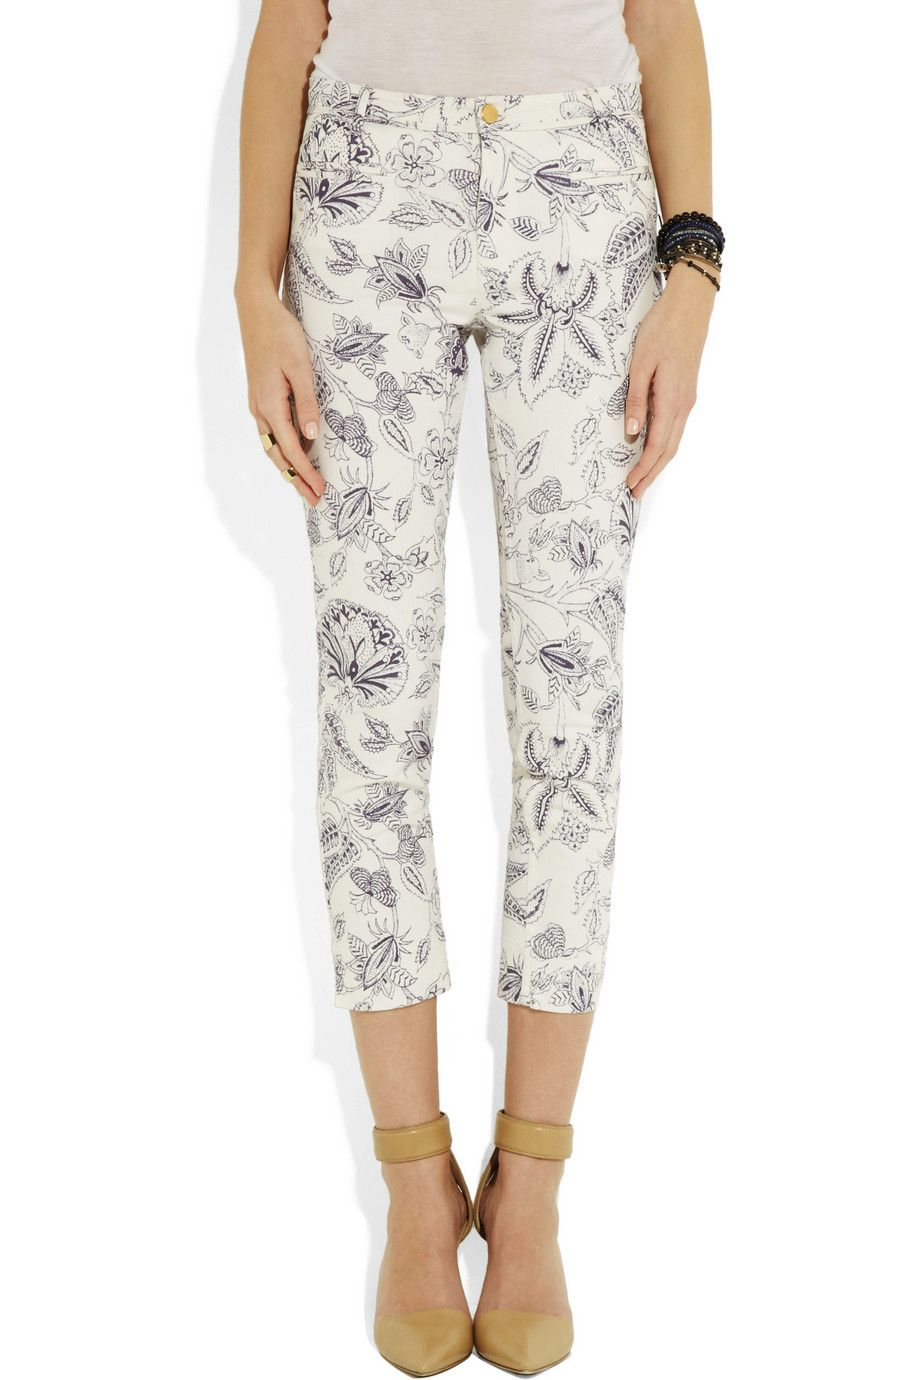 Isabel Marant|Lucas printed cropped skinny jeans|